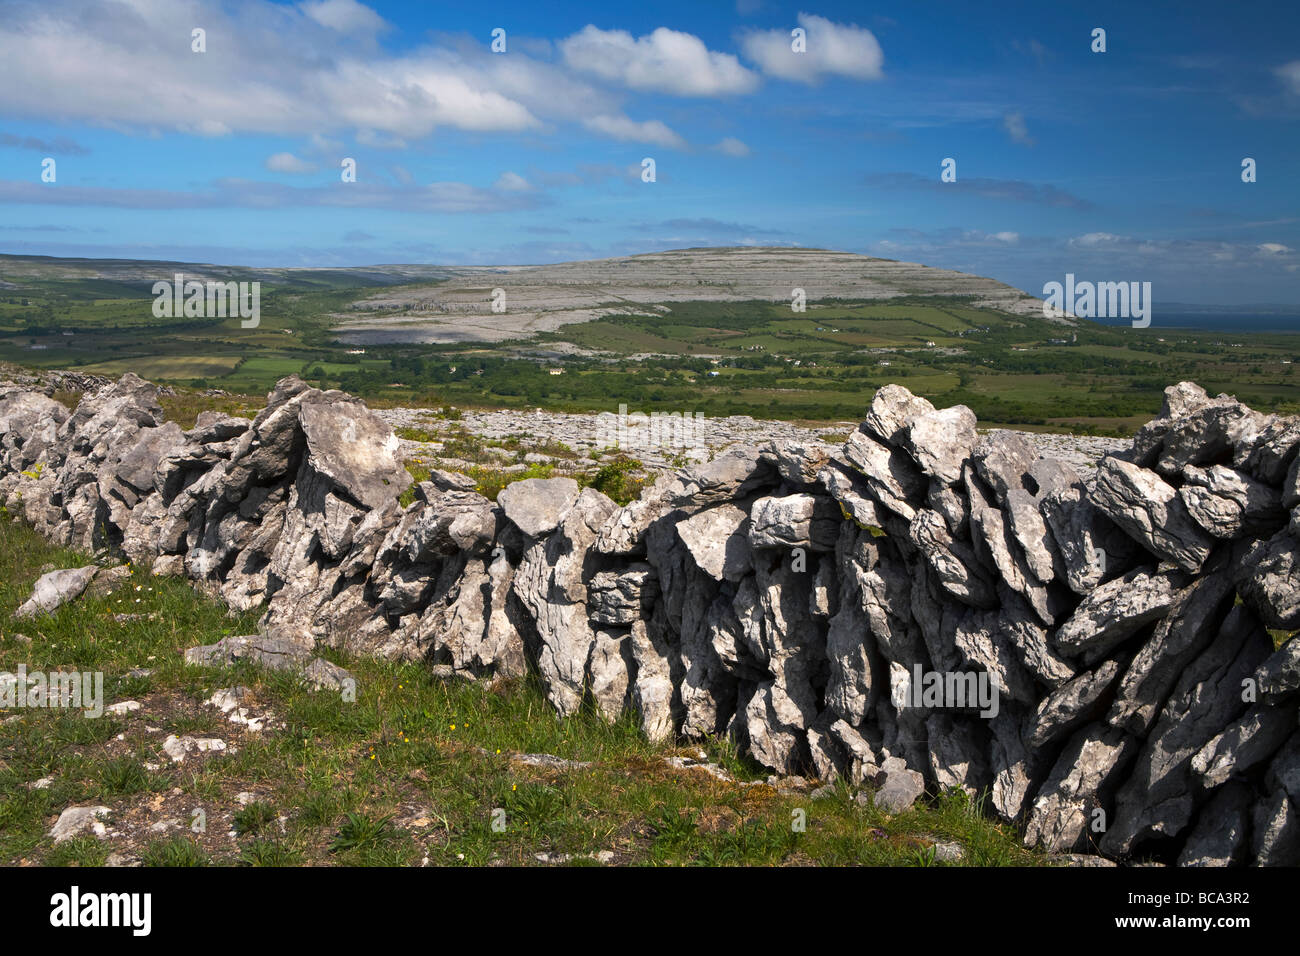 A view of the Burren in County Clare, Eire, looking towards the mountain Cappanawalla - Stock Image